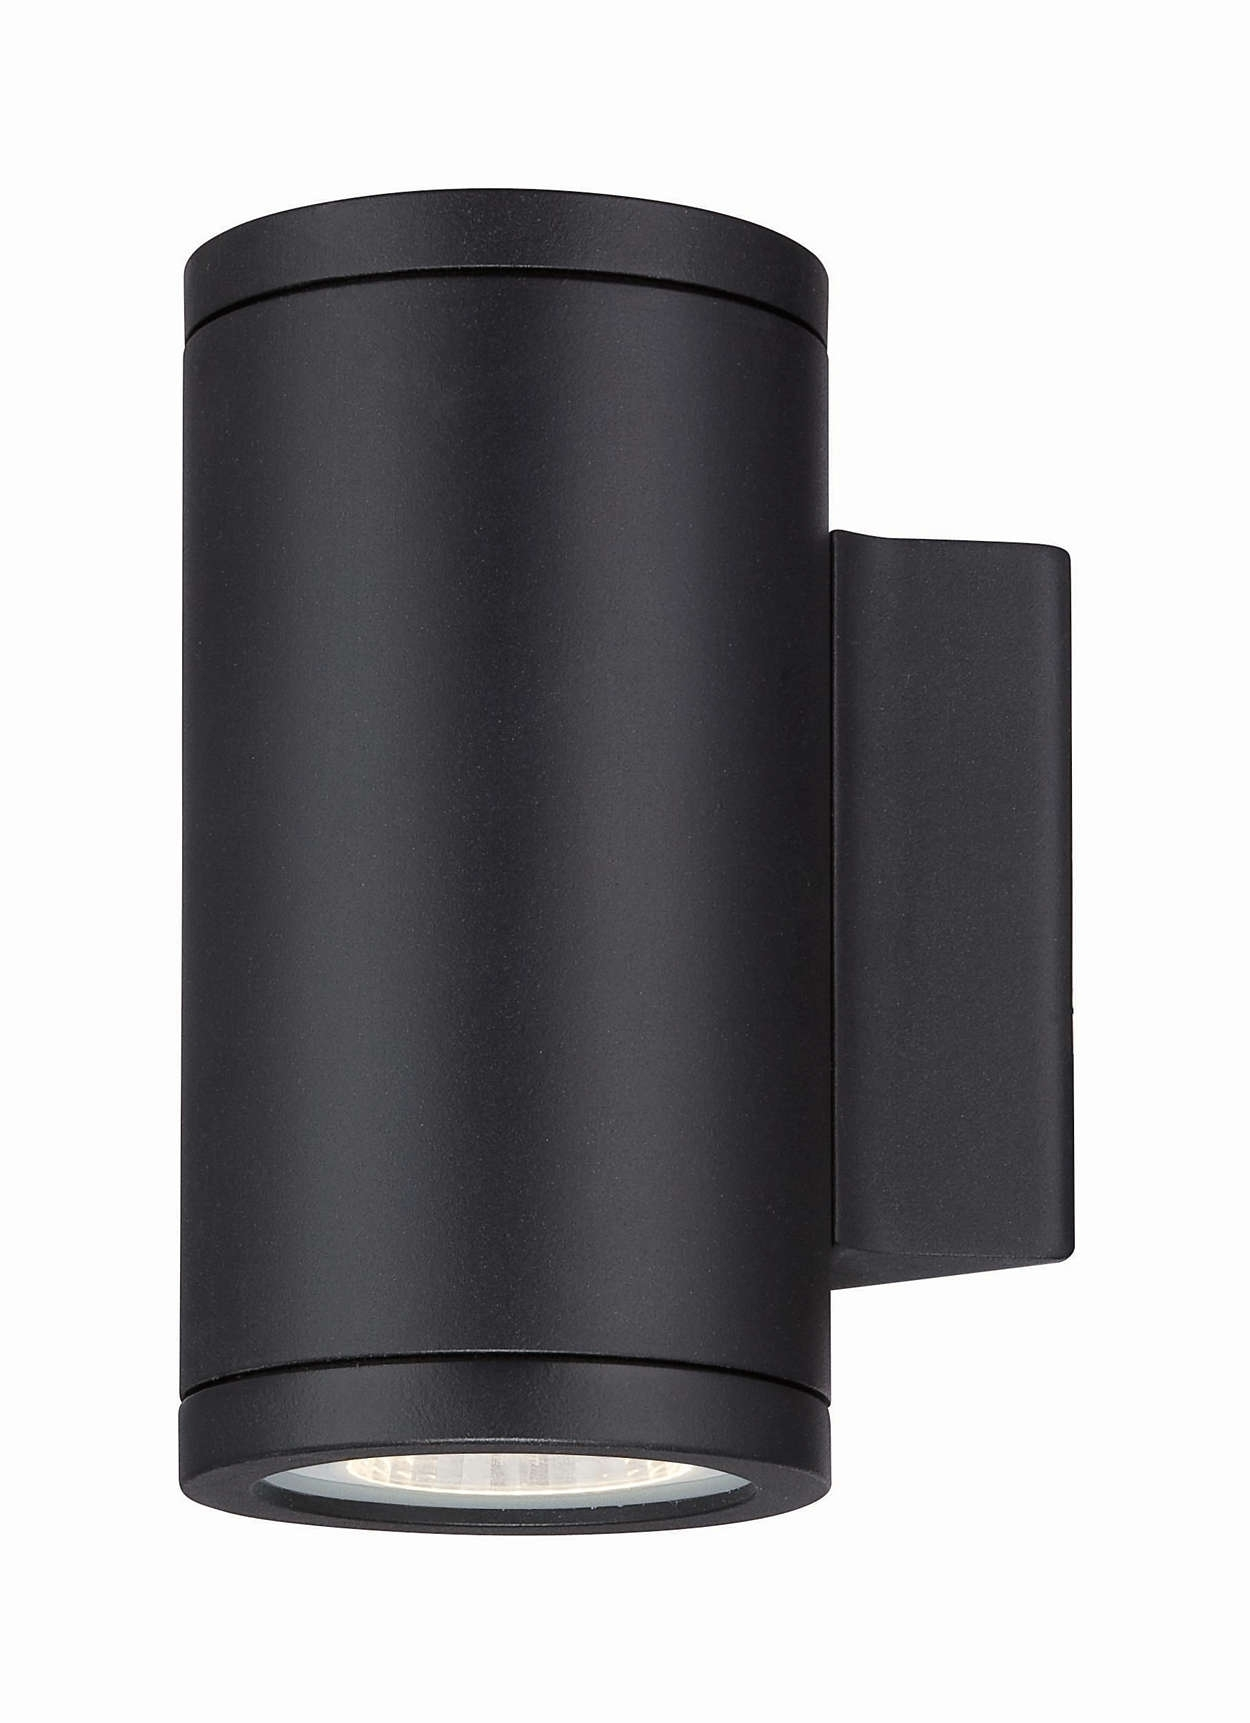 Lovely Outdoor Led Wall Light (1 Photos) | Jlncreation Throughout Black Outdoor Led Wall Lights (#11 of 15)